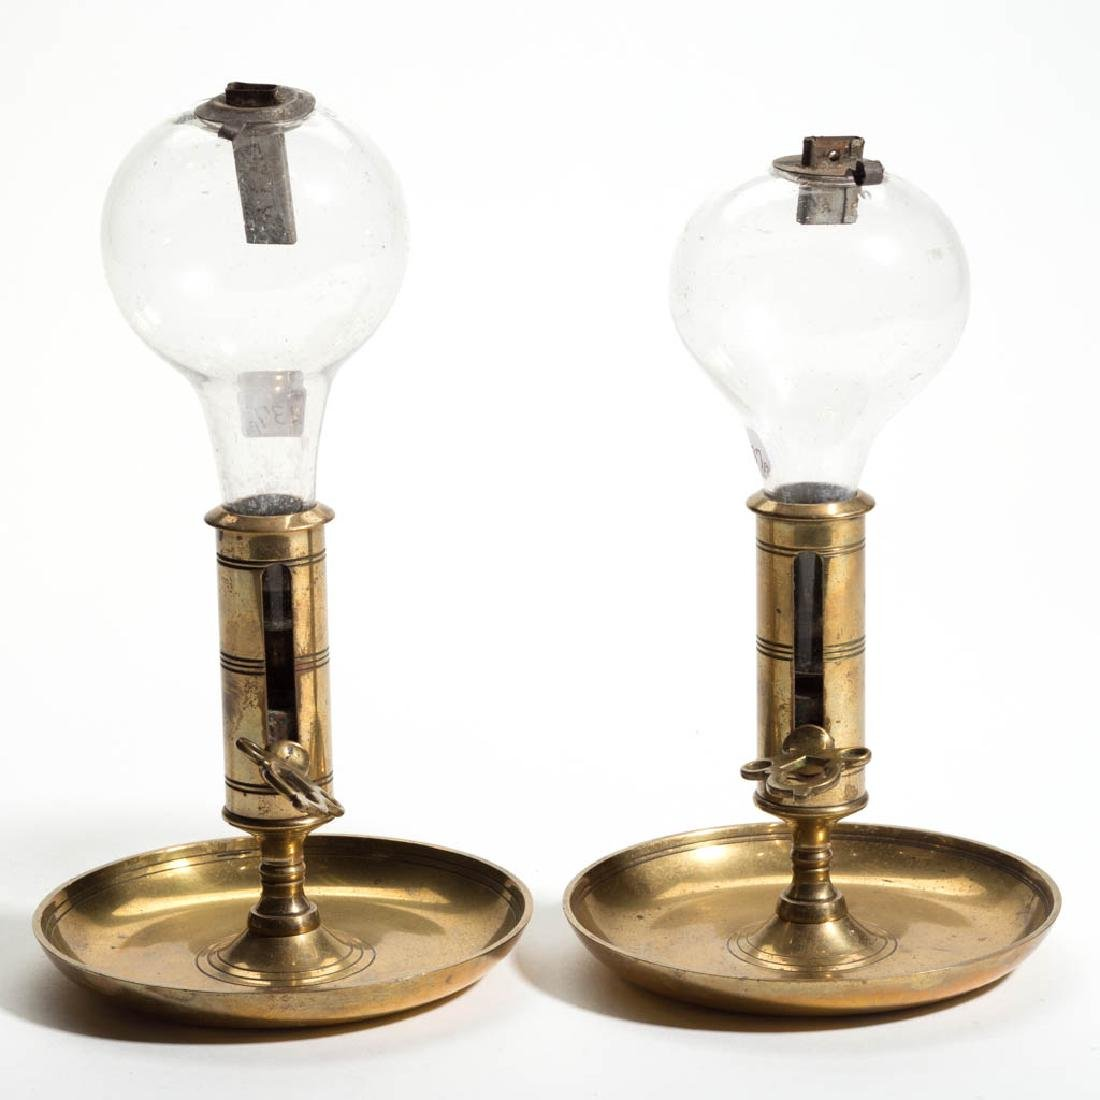 FREE-BLOWN WHALE OIL PEG LAMPS, PAIR